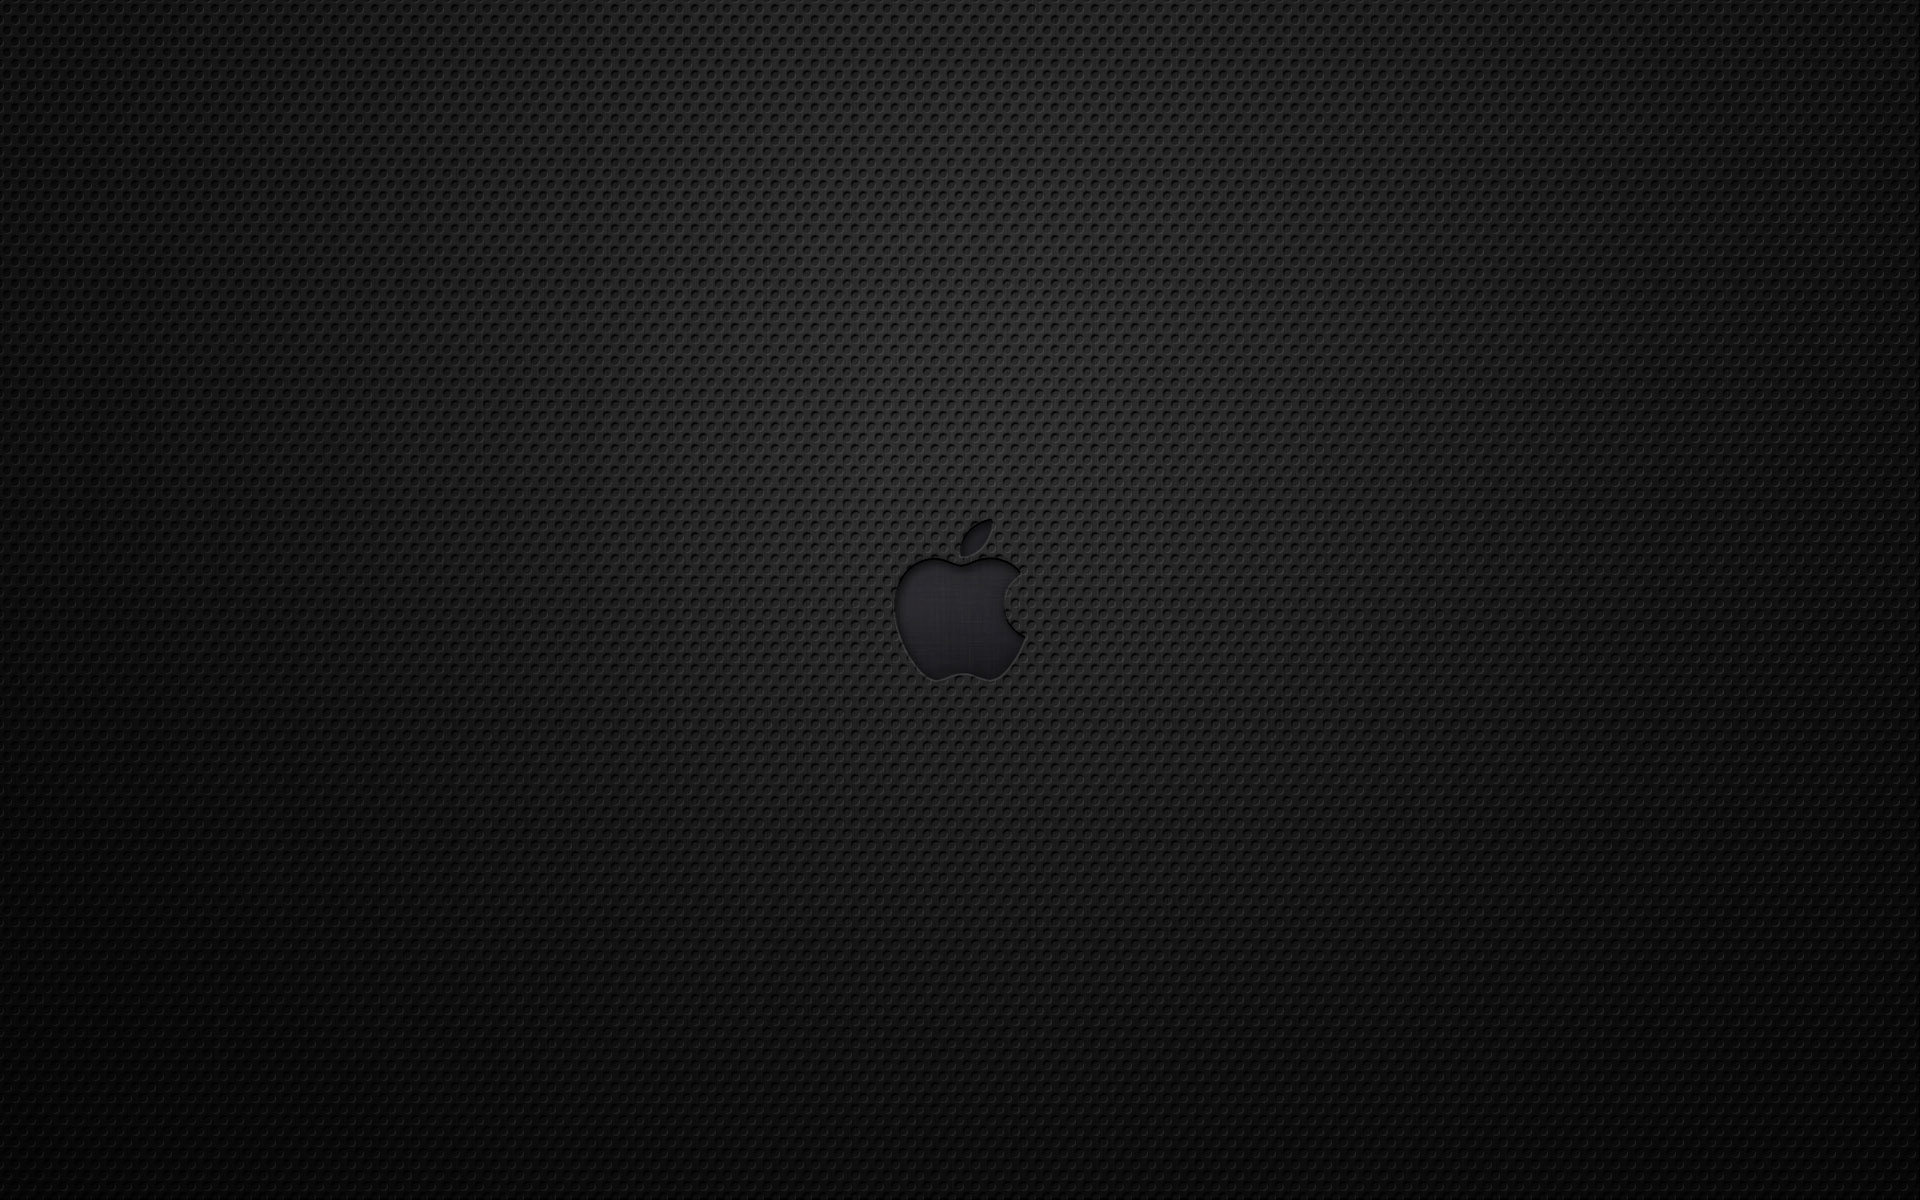 desktop backgrounds for mac free desktop backgrounds for mac 1920a—1200